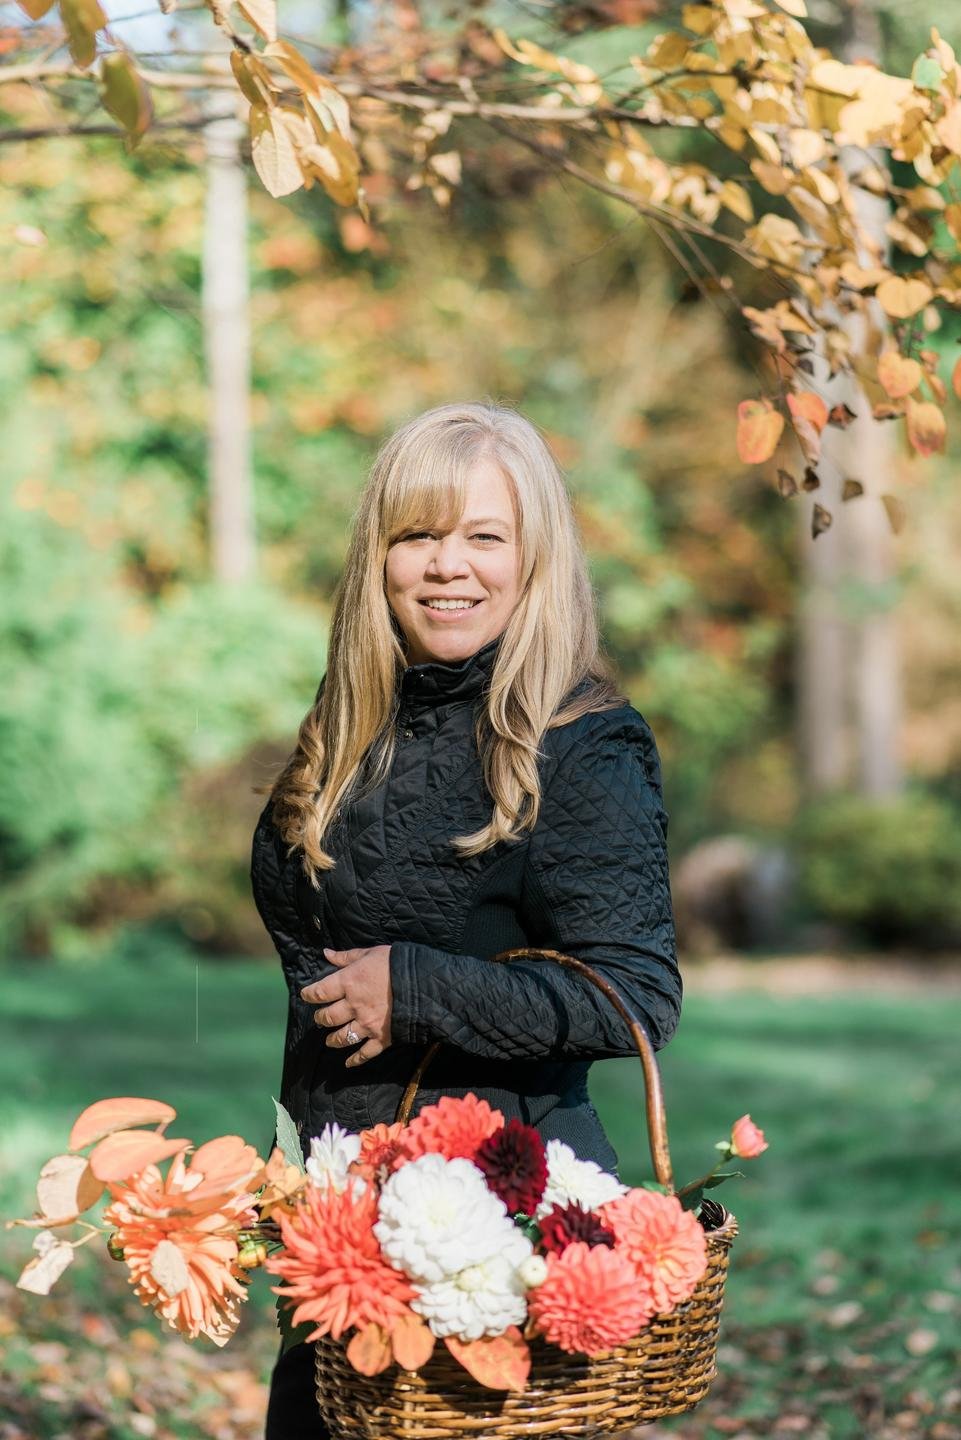 woman smiling holding a basket of dahlia flowers in the fall